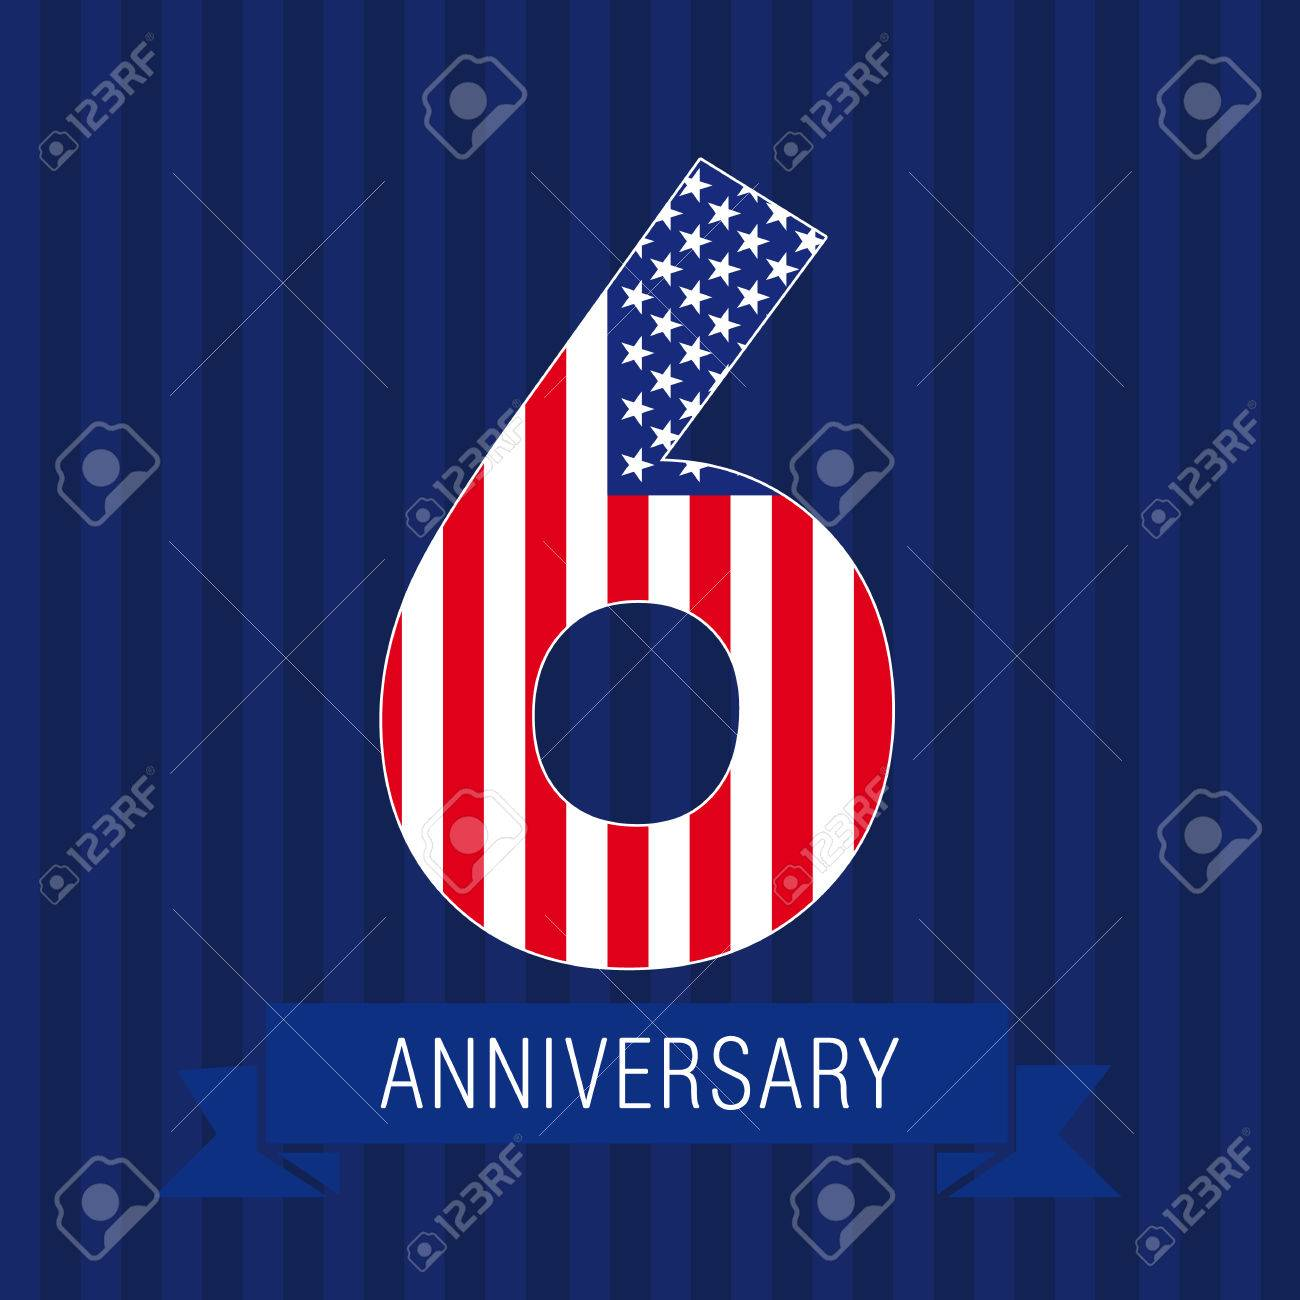 anniversary 6 us flag logo template of celebrating icon of 6th